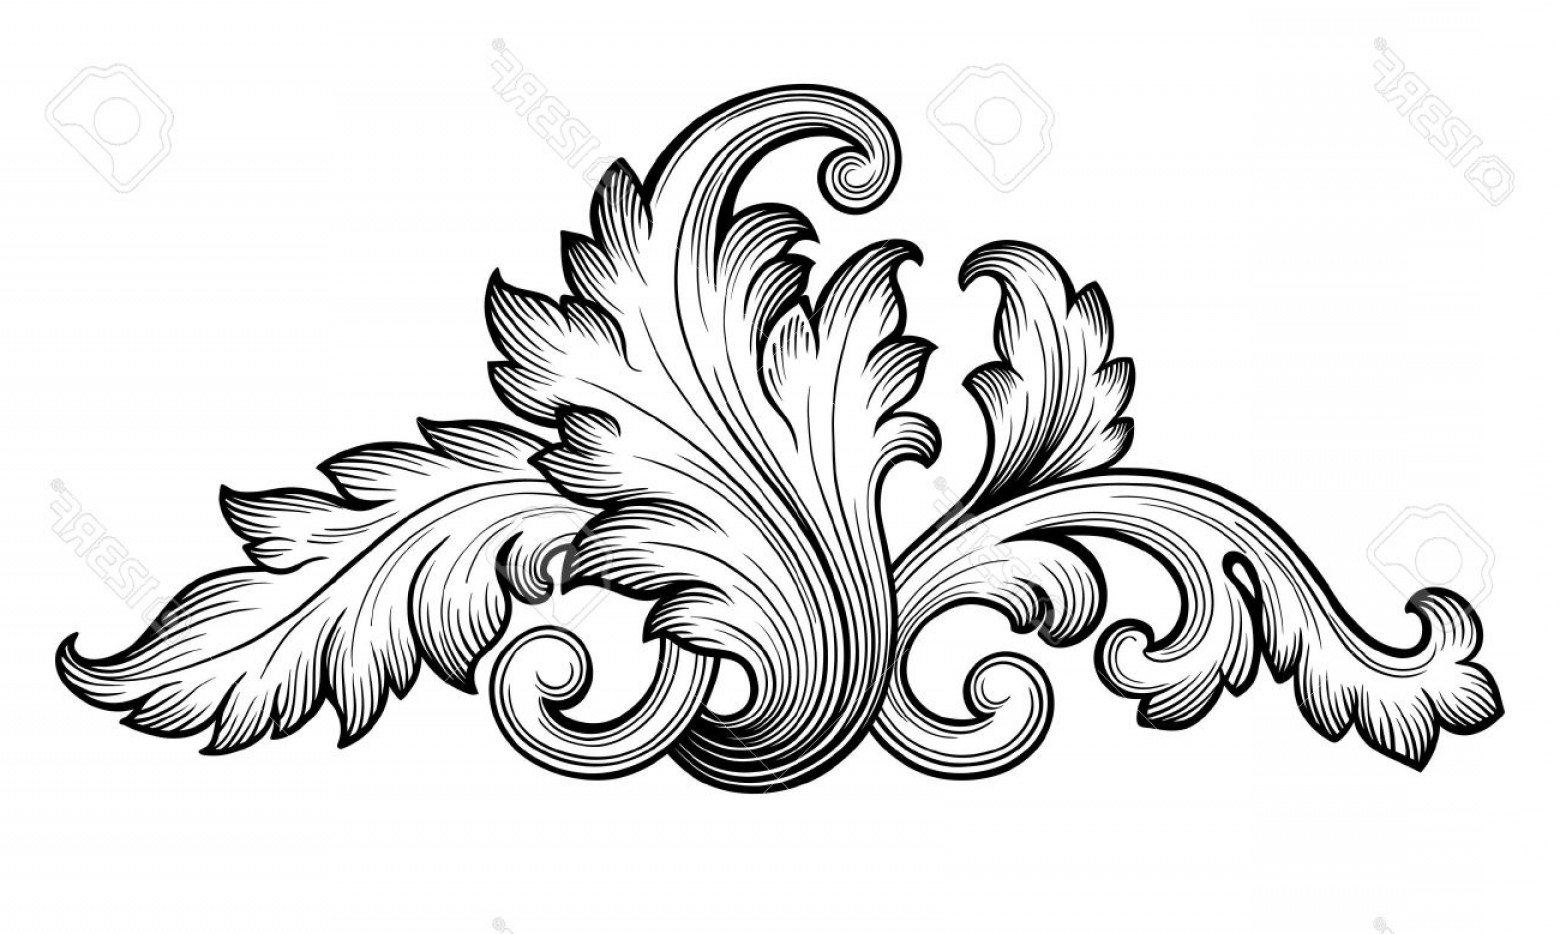 Baroque Vector Clip Art: Photostock Vector Vintage Baroque Floral Scroll Foliage Ornament Filigree Engraving Retro Style Design Element Vector